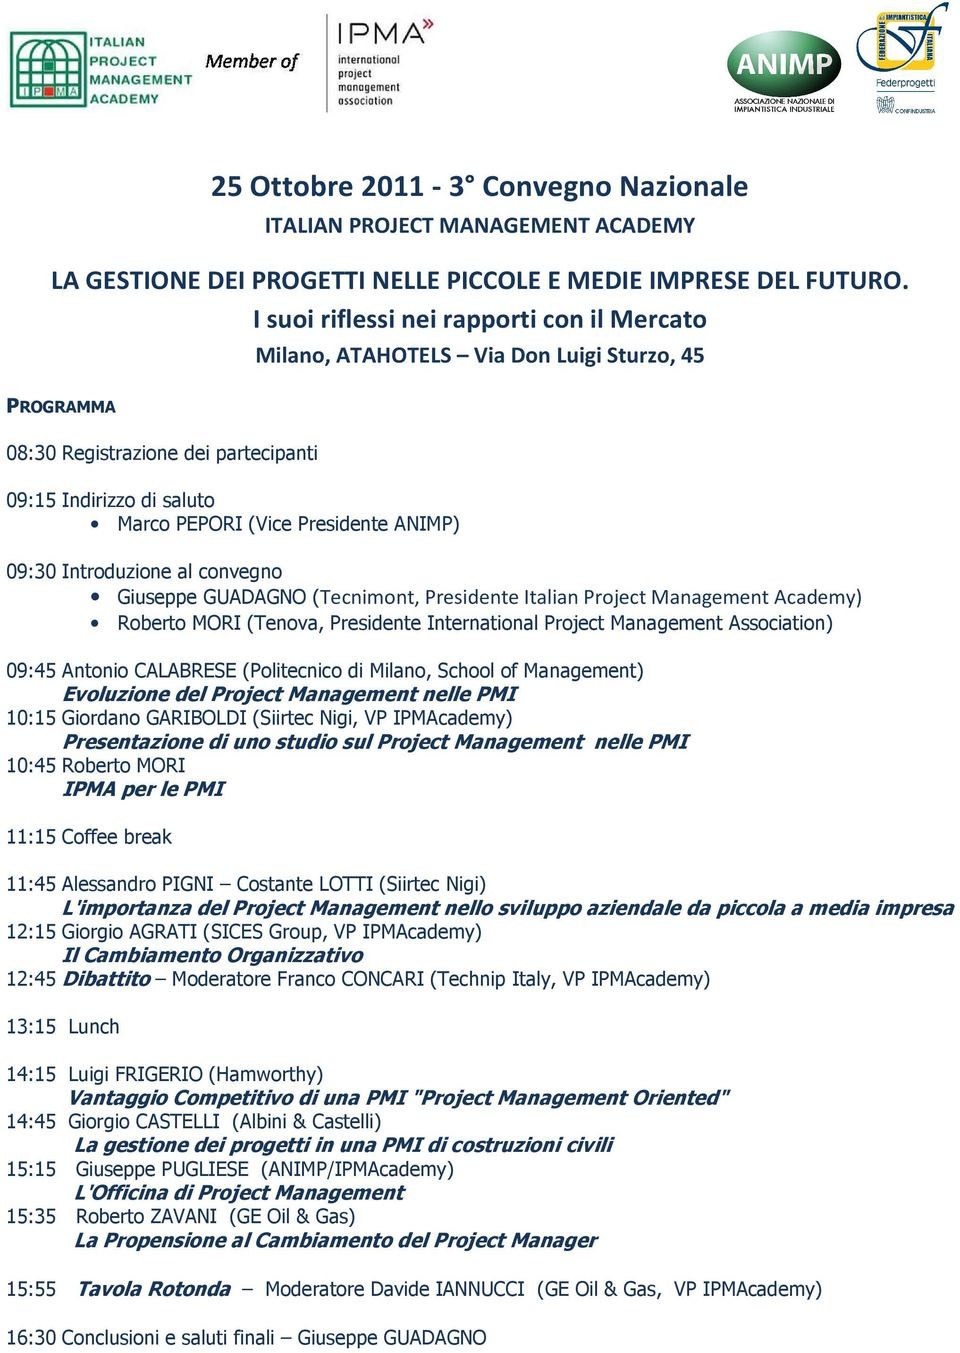 09:30 Introduzione al convegno Giuseppe GUADAGNO (Tecnimont, Presidente Italian Project Management Academy) Roberto MORI (Tenova, Presidente International Project Management Association) 09:45